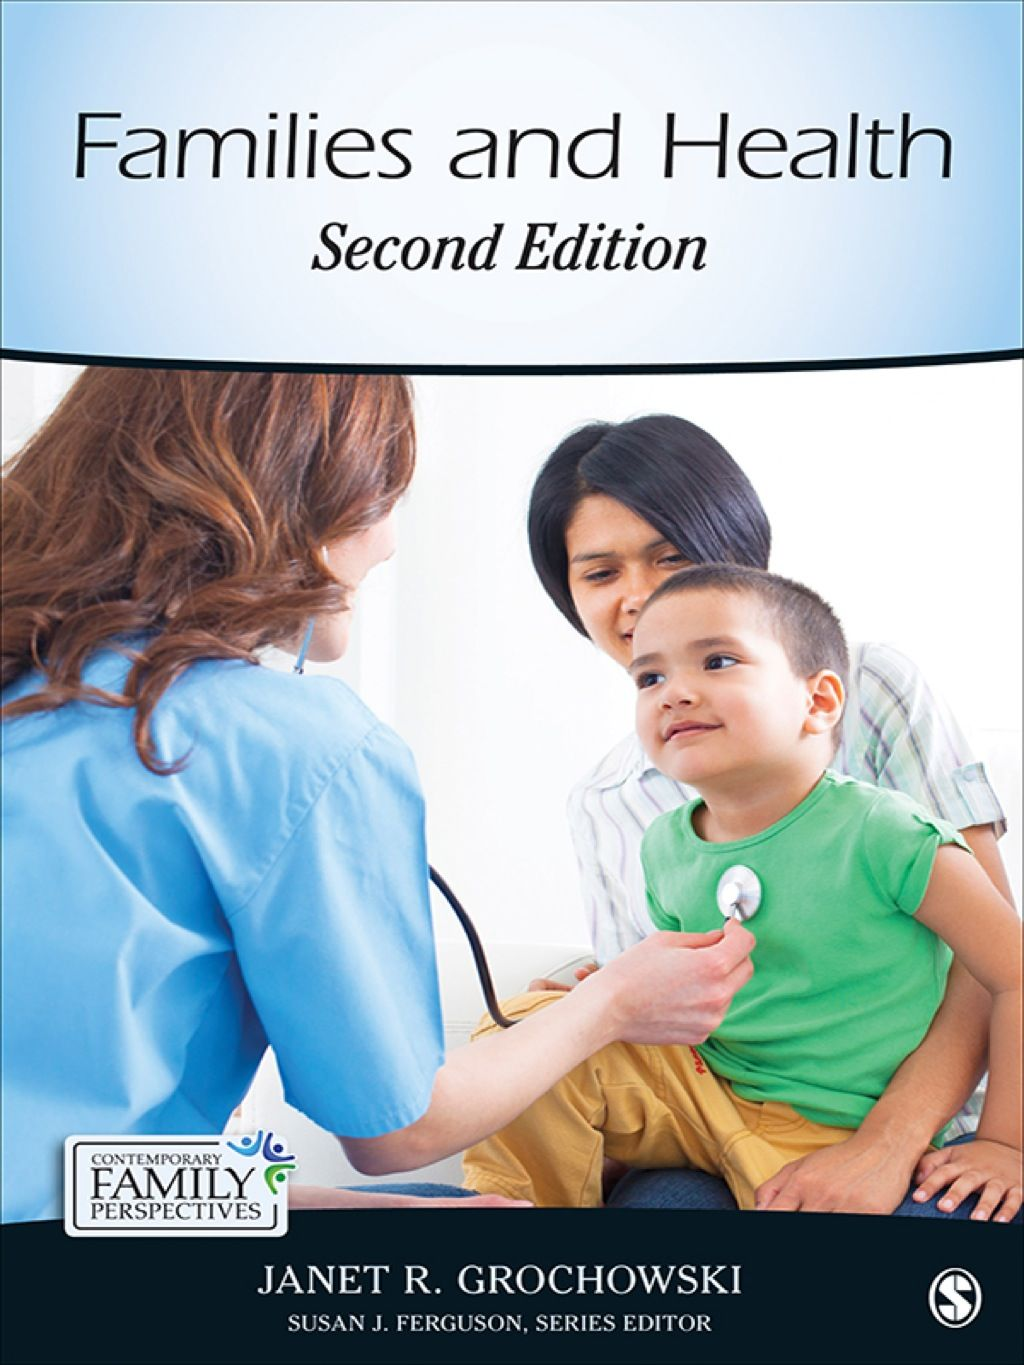 Families and Health (eBook Rental) (With images) Health